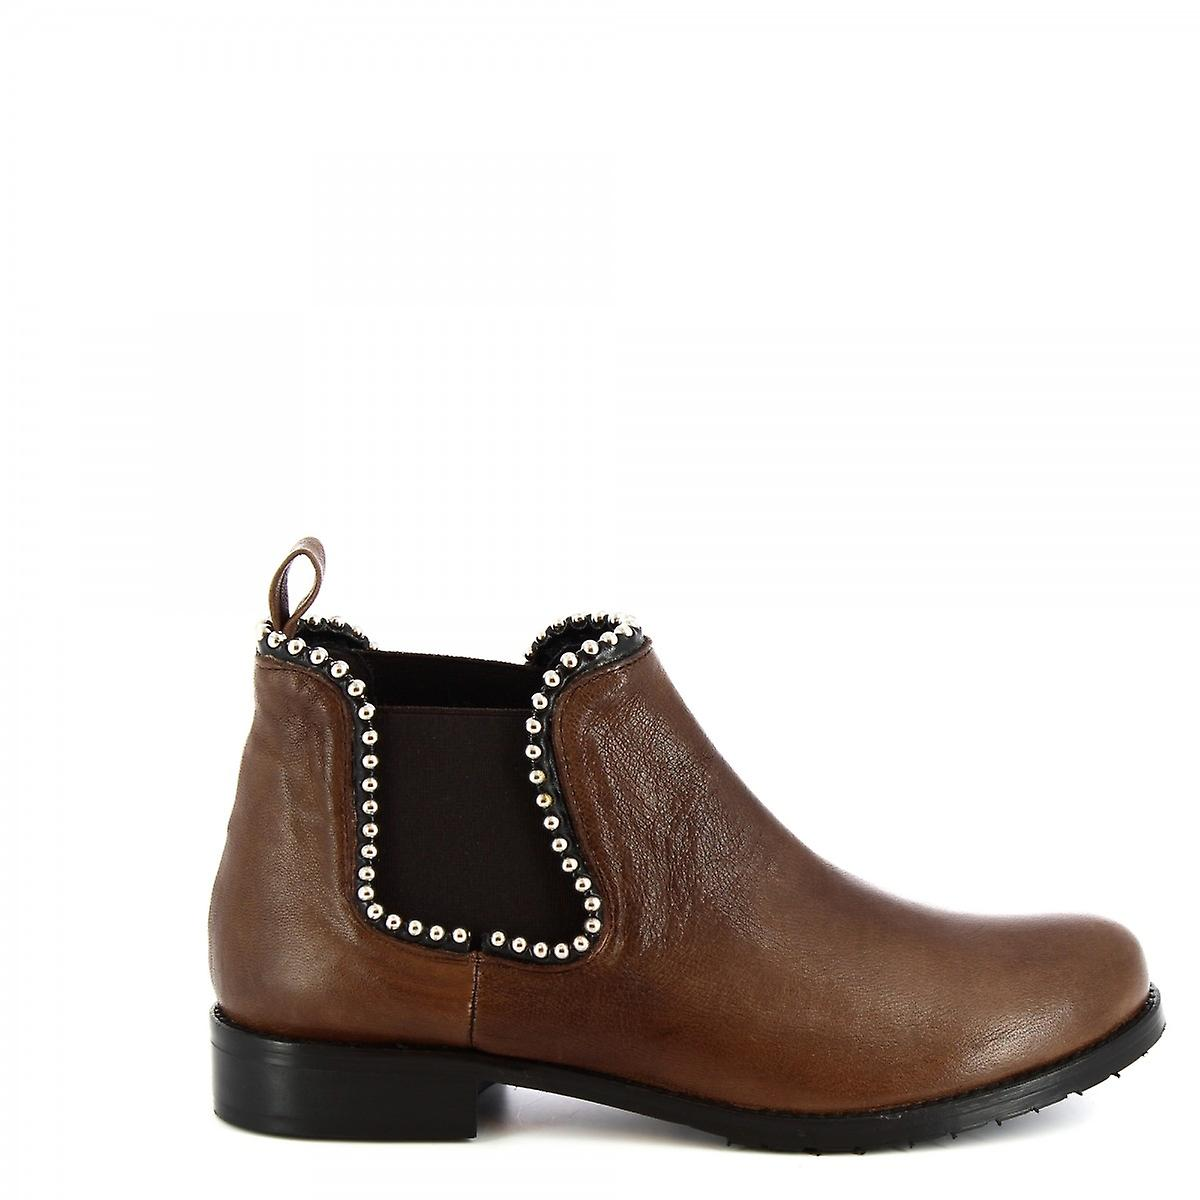 Leonardo Shoes Women's handmade studded ankle boots in dark brown calf leather 9JY5C